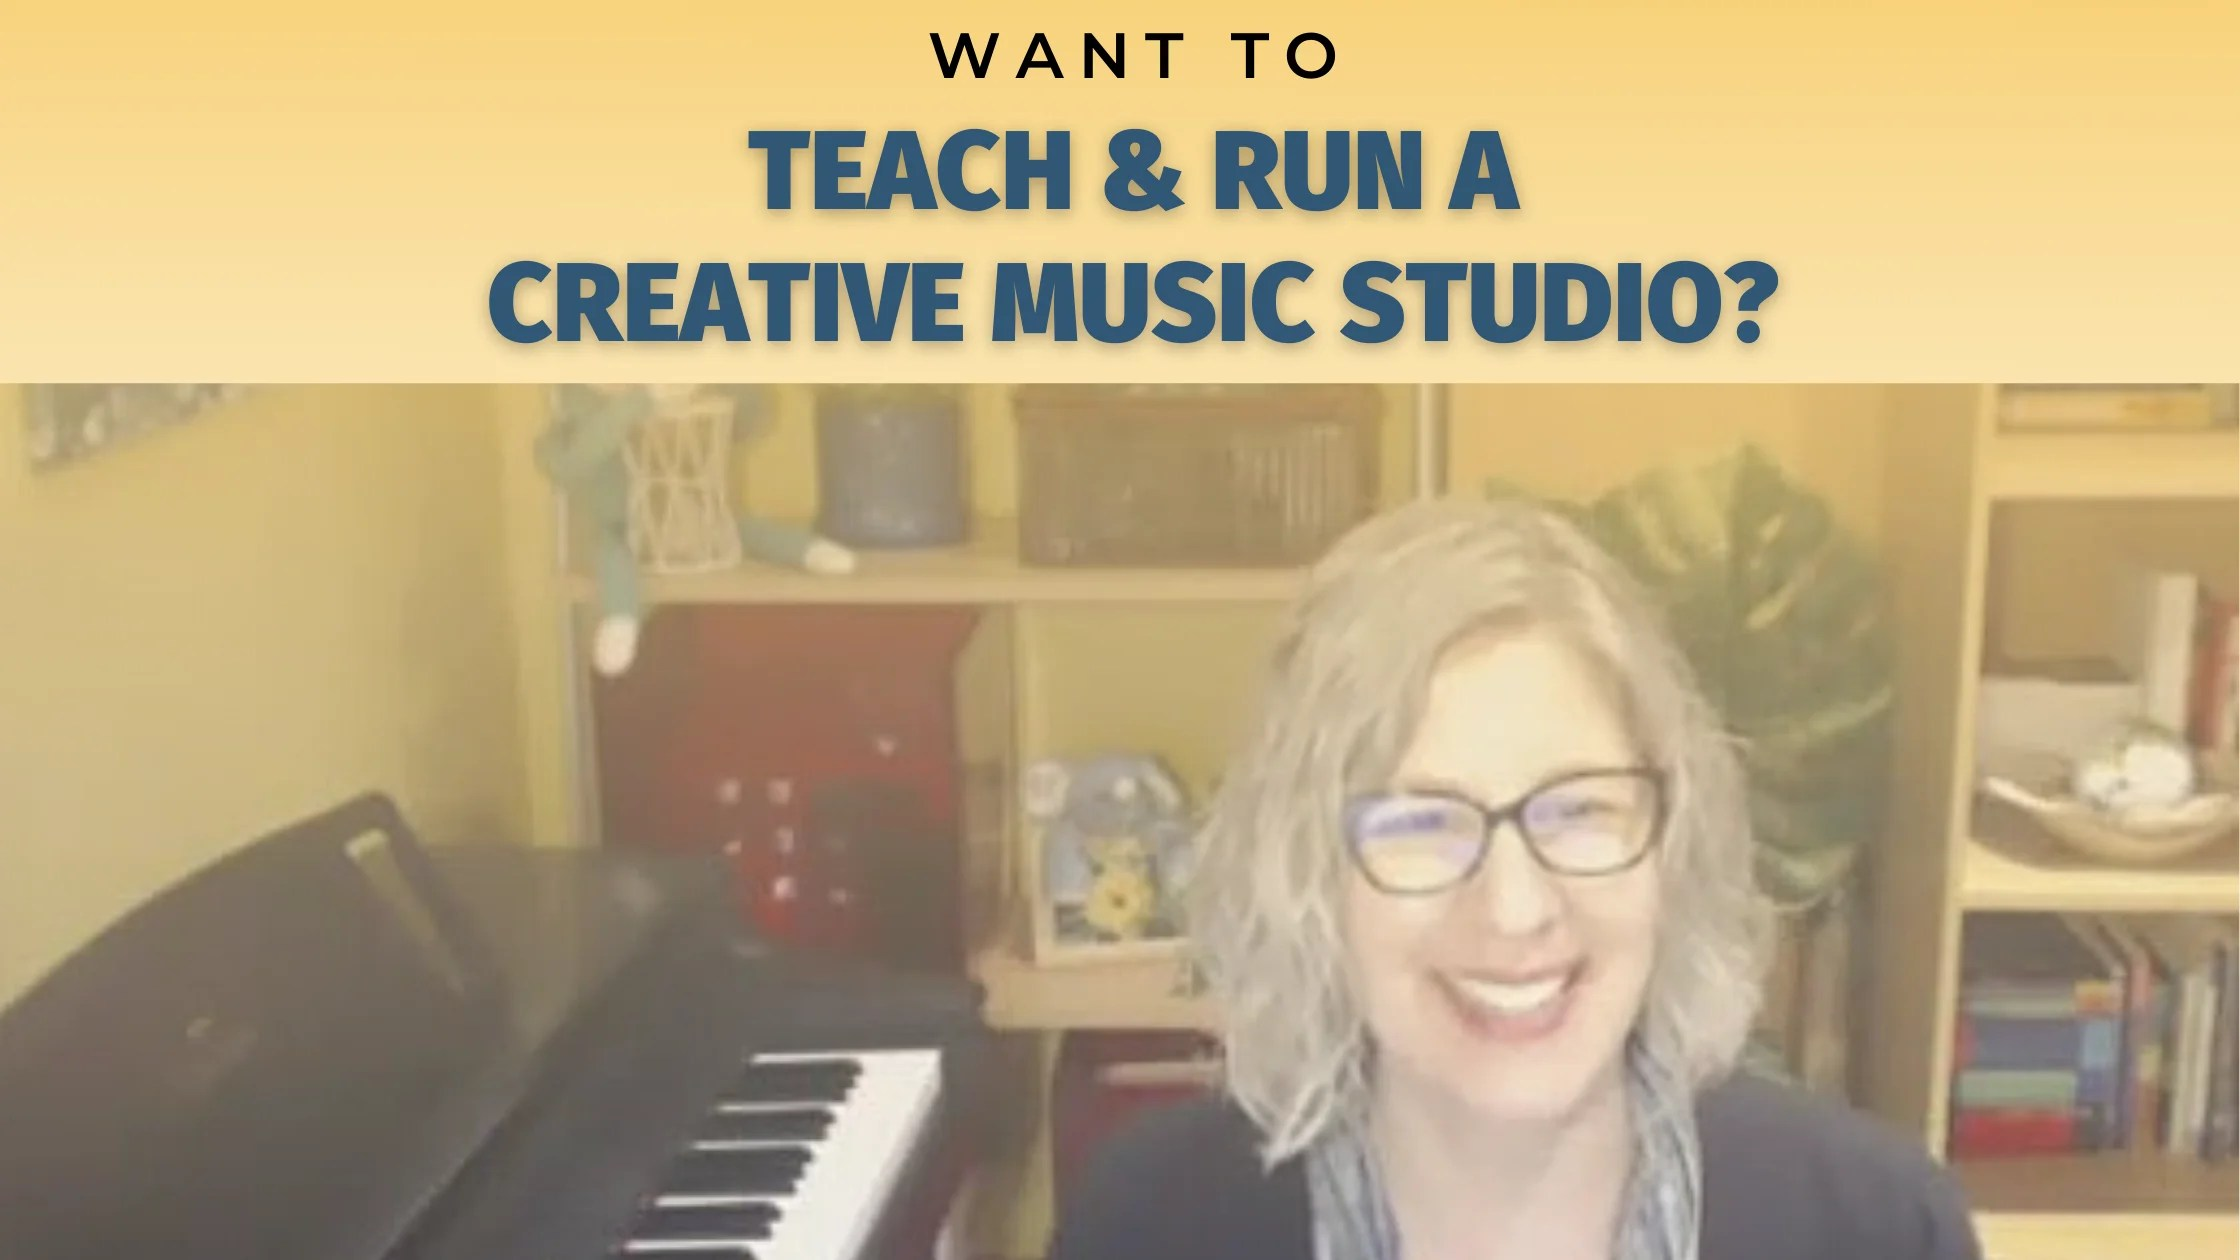 Want to teach & run a creative music studio without sacrificing your personal life?